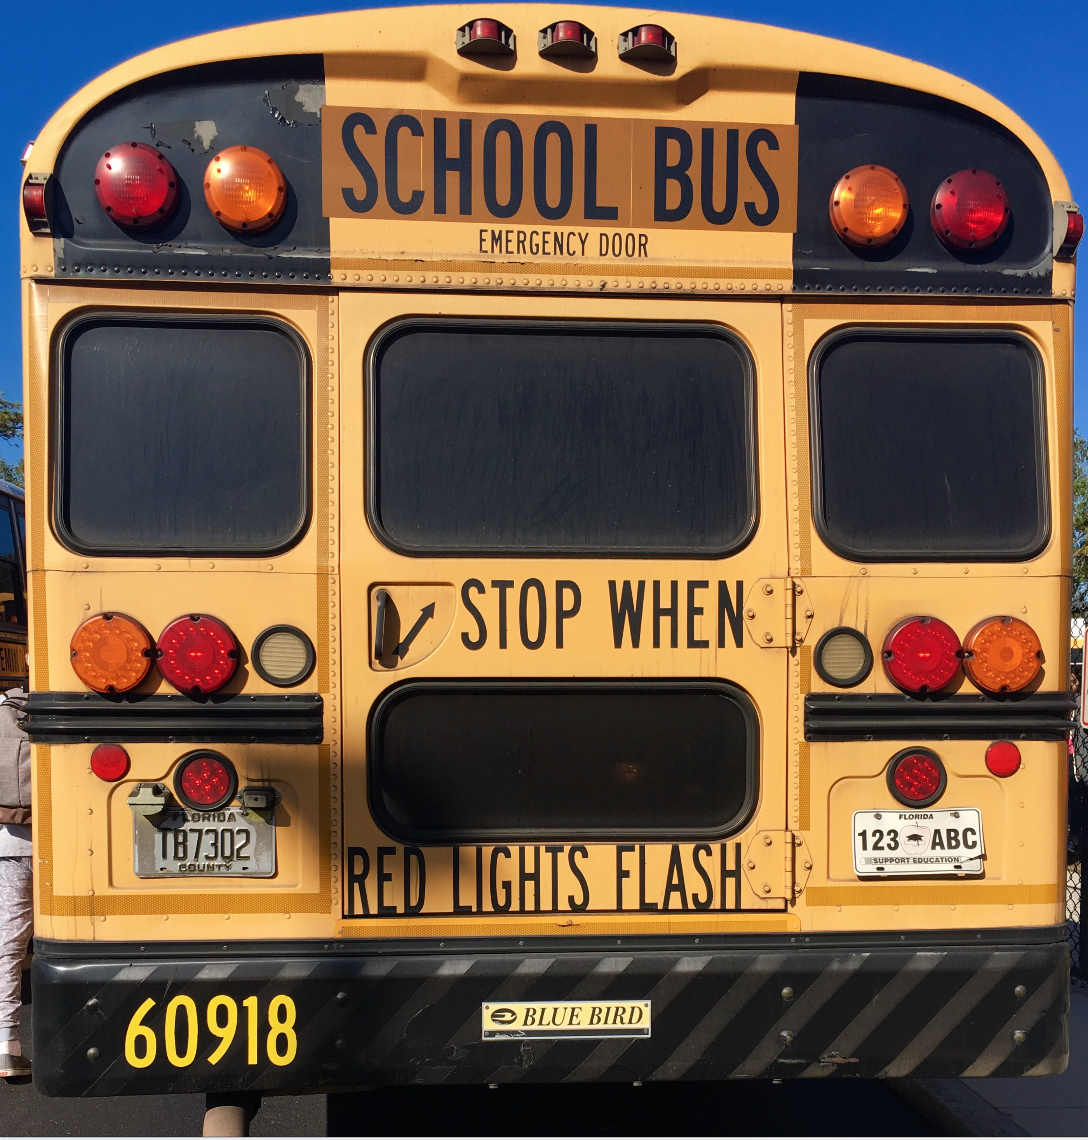 A new bus pattern will have consequences on the entire student body.